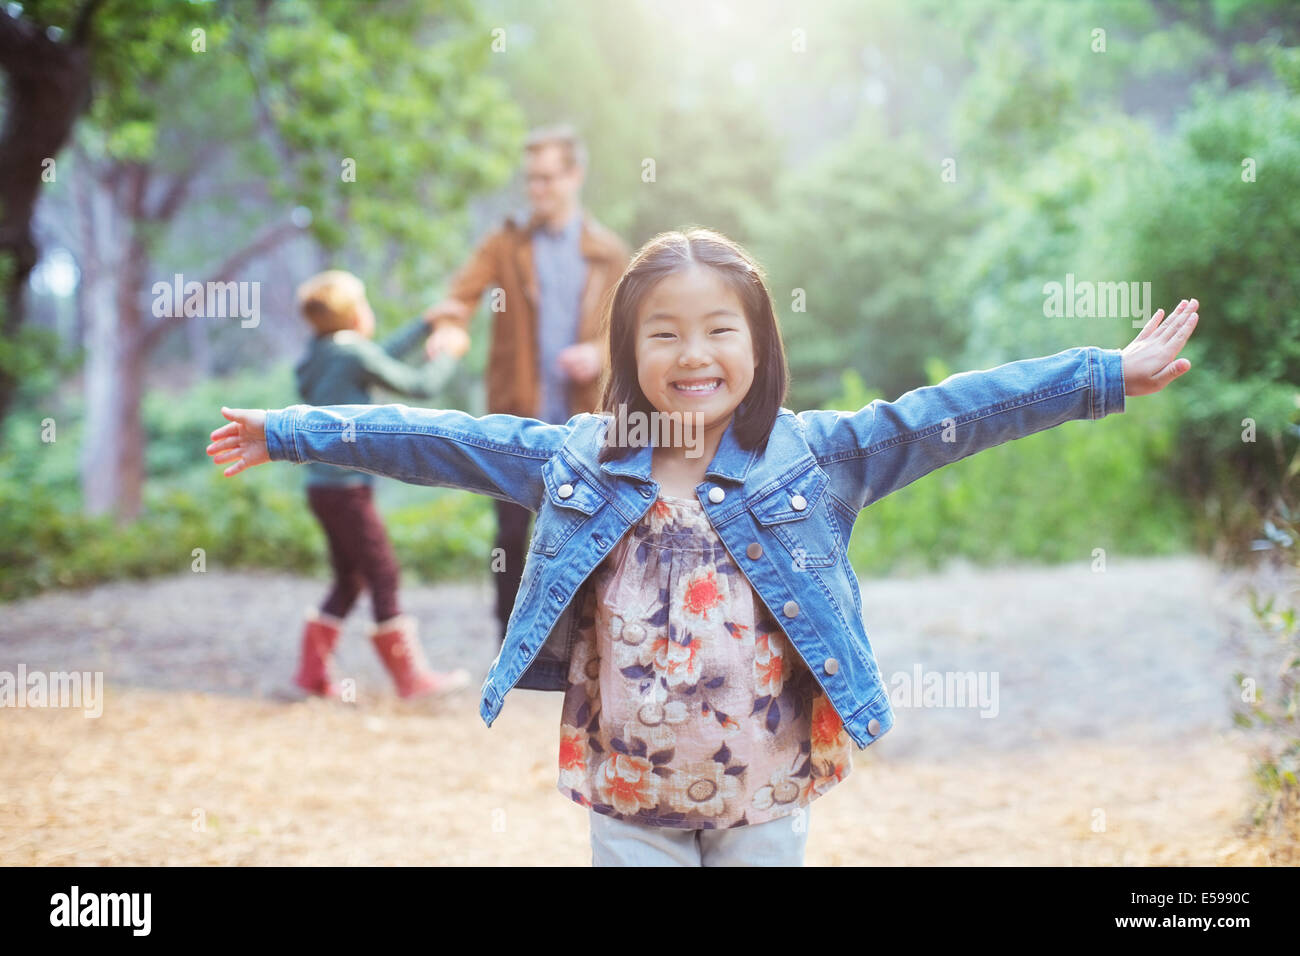 Girl cheering in forest Photo Stock